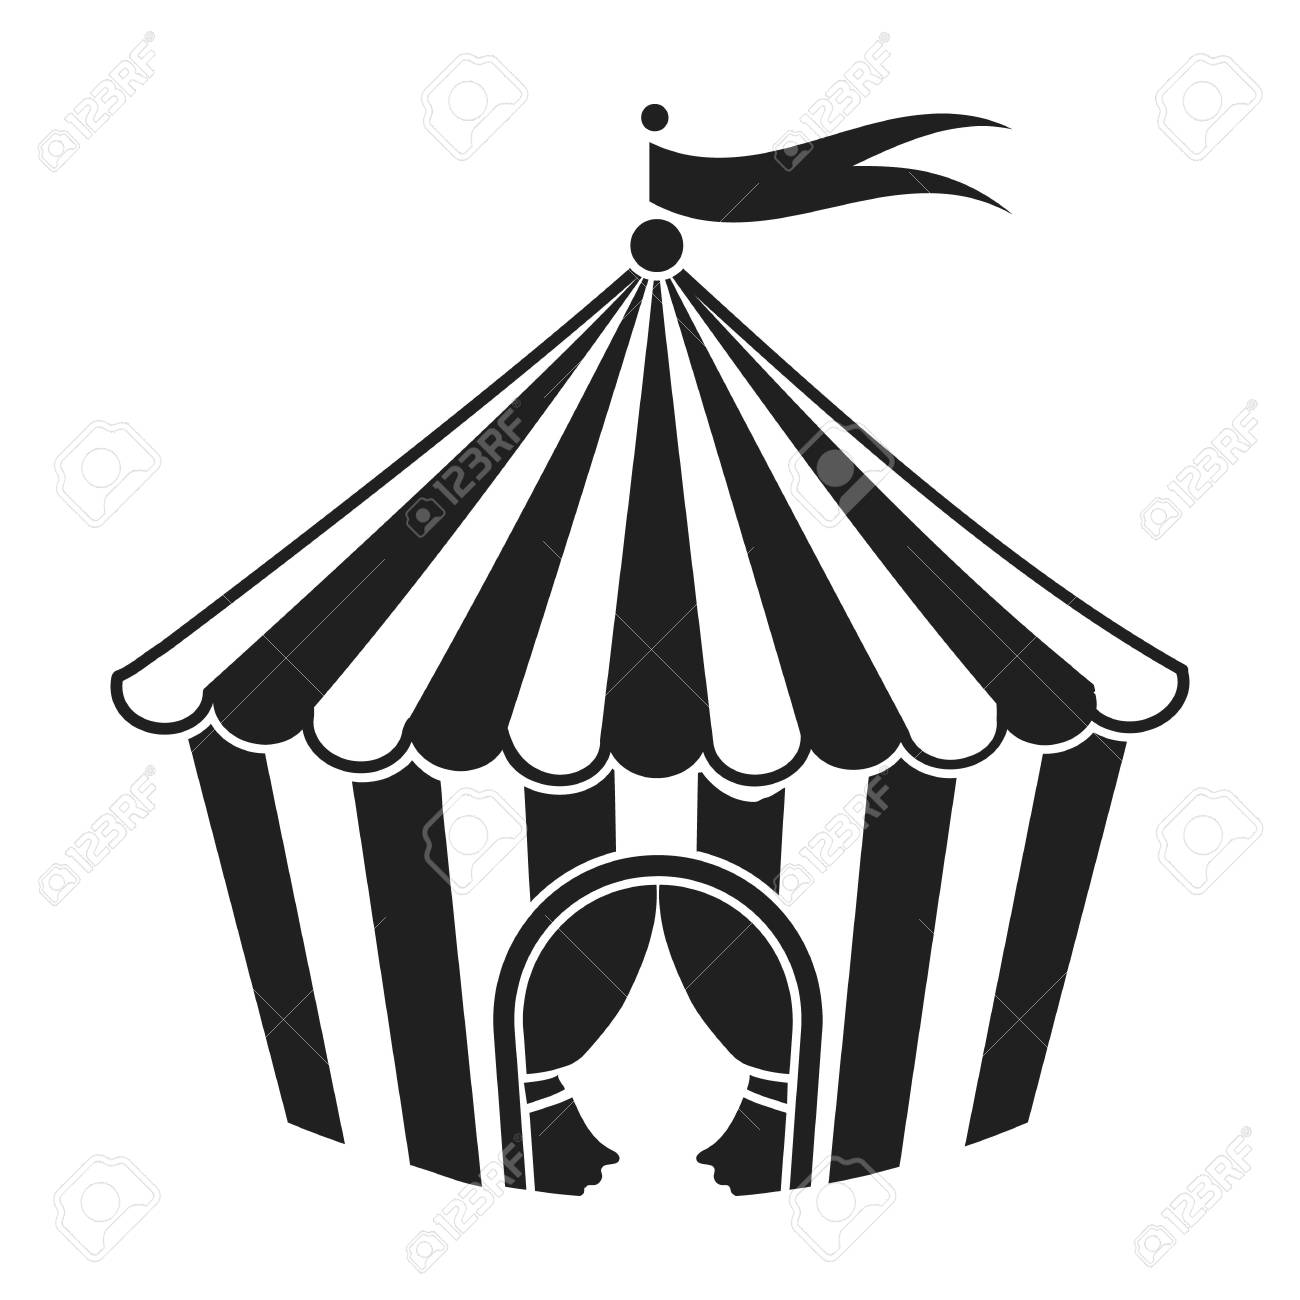 393 Circus Tent free clipart.